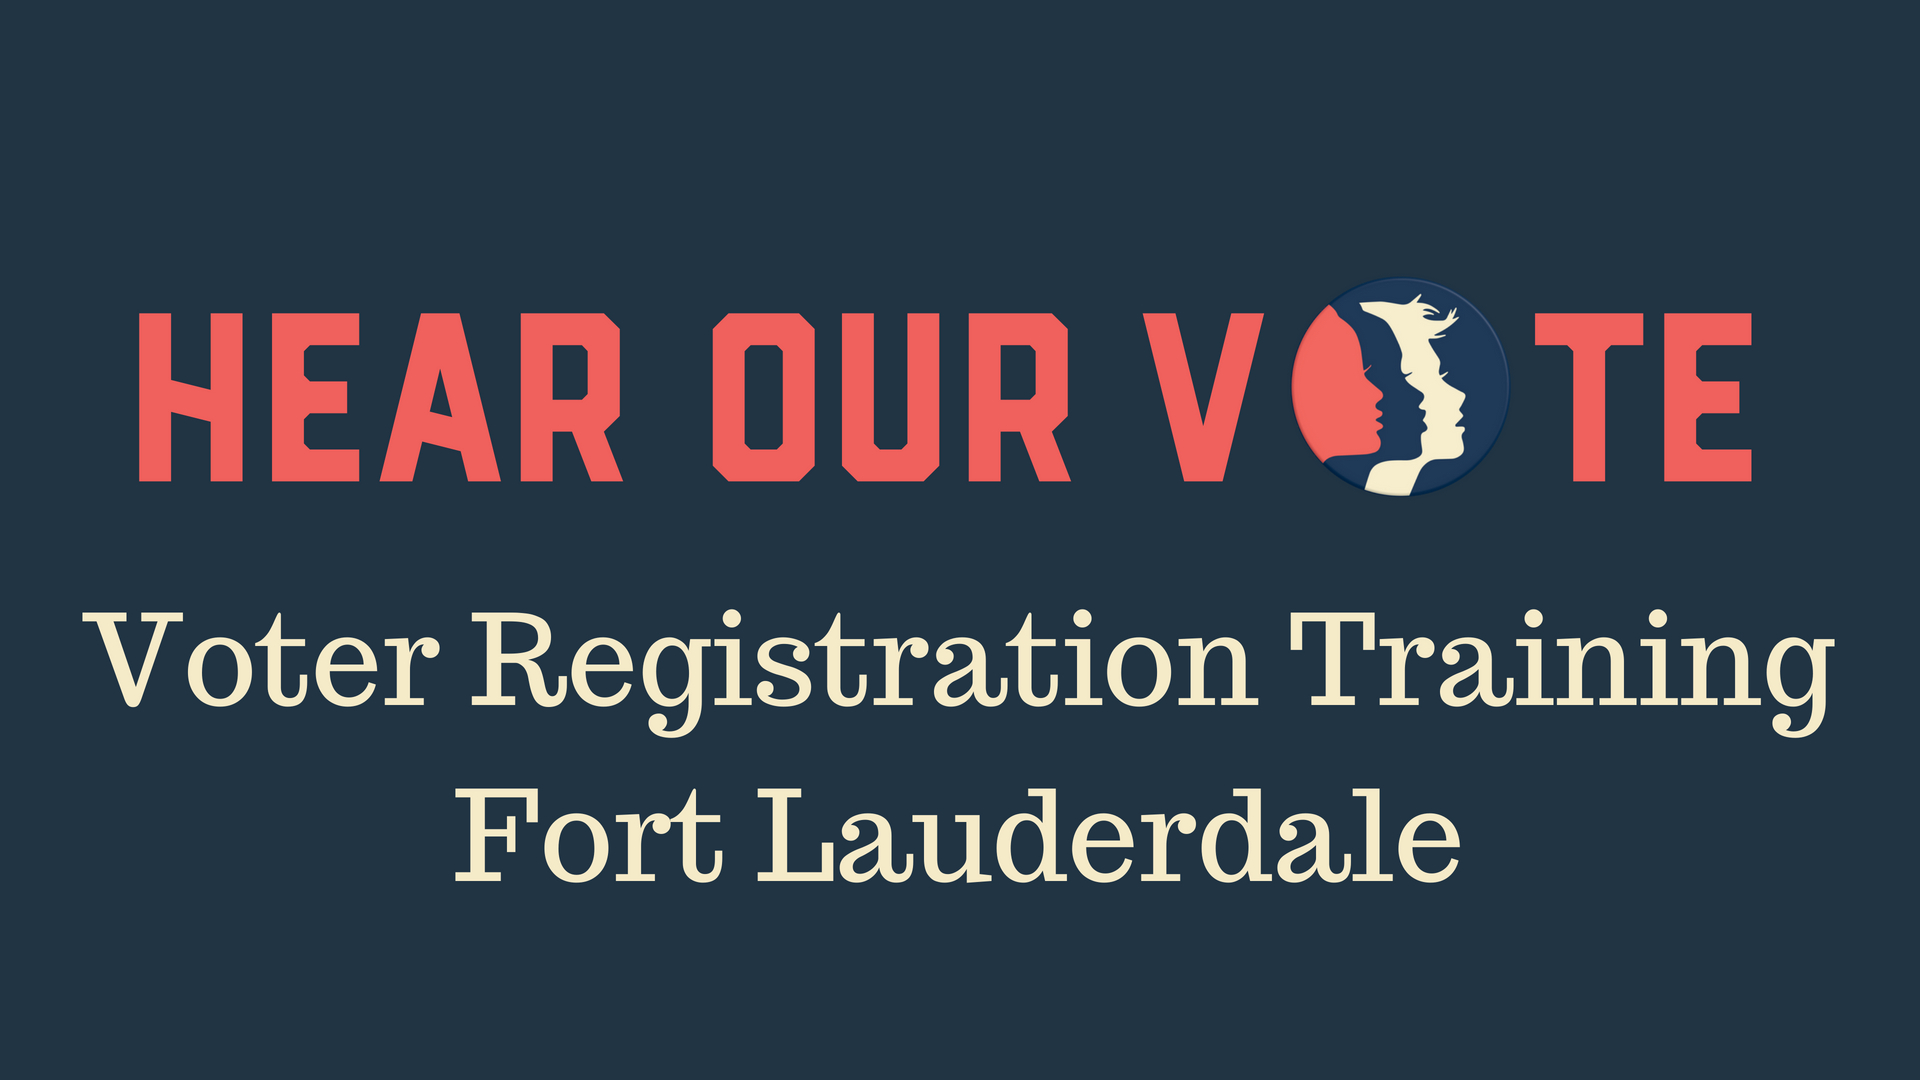 7-14-18: Voter Registration Training - On Saturday, July 14th, Women's March Broward will host a Voter Registration Training Session. Votes can and do change history. Voting builds a stronger democracy by providing people a voice, and giving people the ability to vote can empower them to make an impact on current legislation and policy. With this training you can join us at Voter Registrations Drives throughout Broward County as we work through November to turn Florida BLUE. Please join us to learn what you can do to help. We hope to see you there!